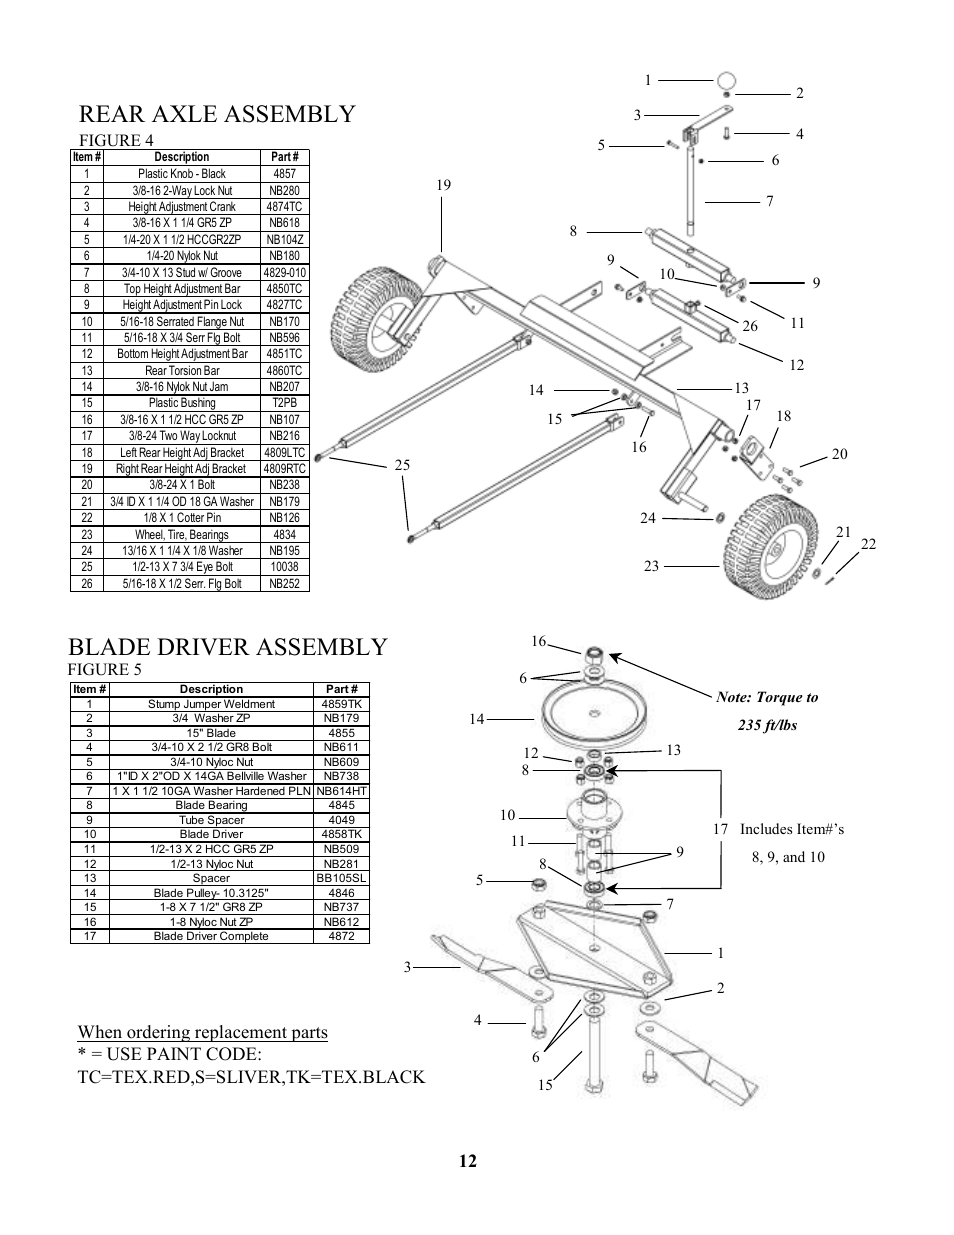 Rear axle assembly, Blade driver assembly, Figure 4